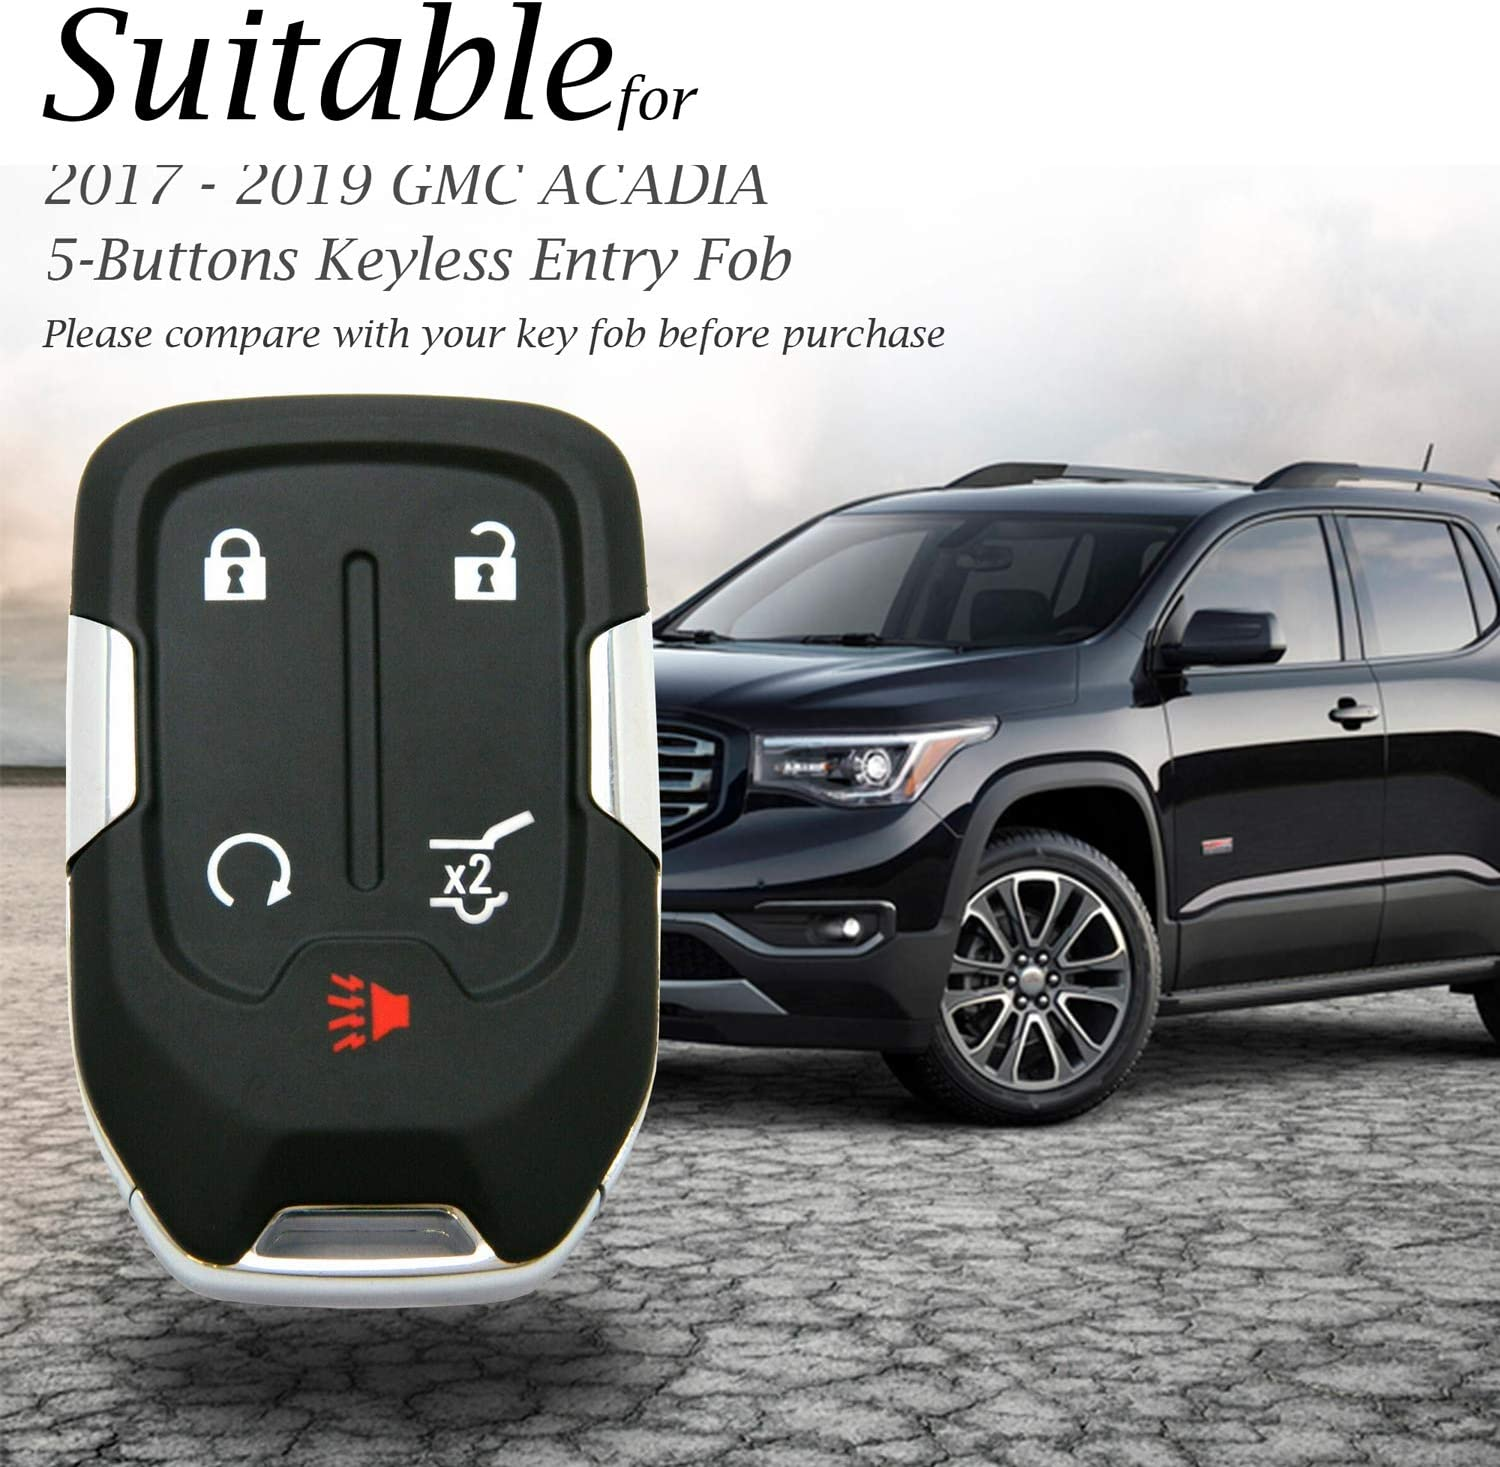 Keyless Remote For 2019 Gmc Acadia Key Fob Car Keyfob Replacement